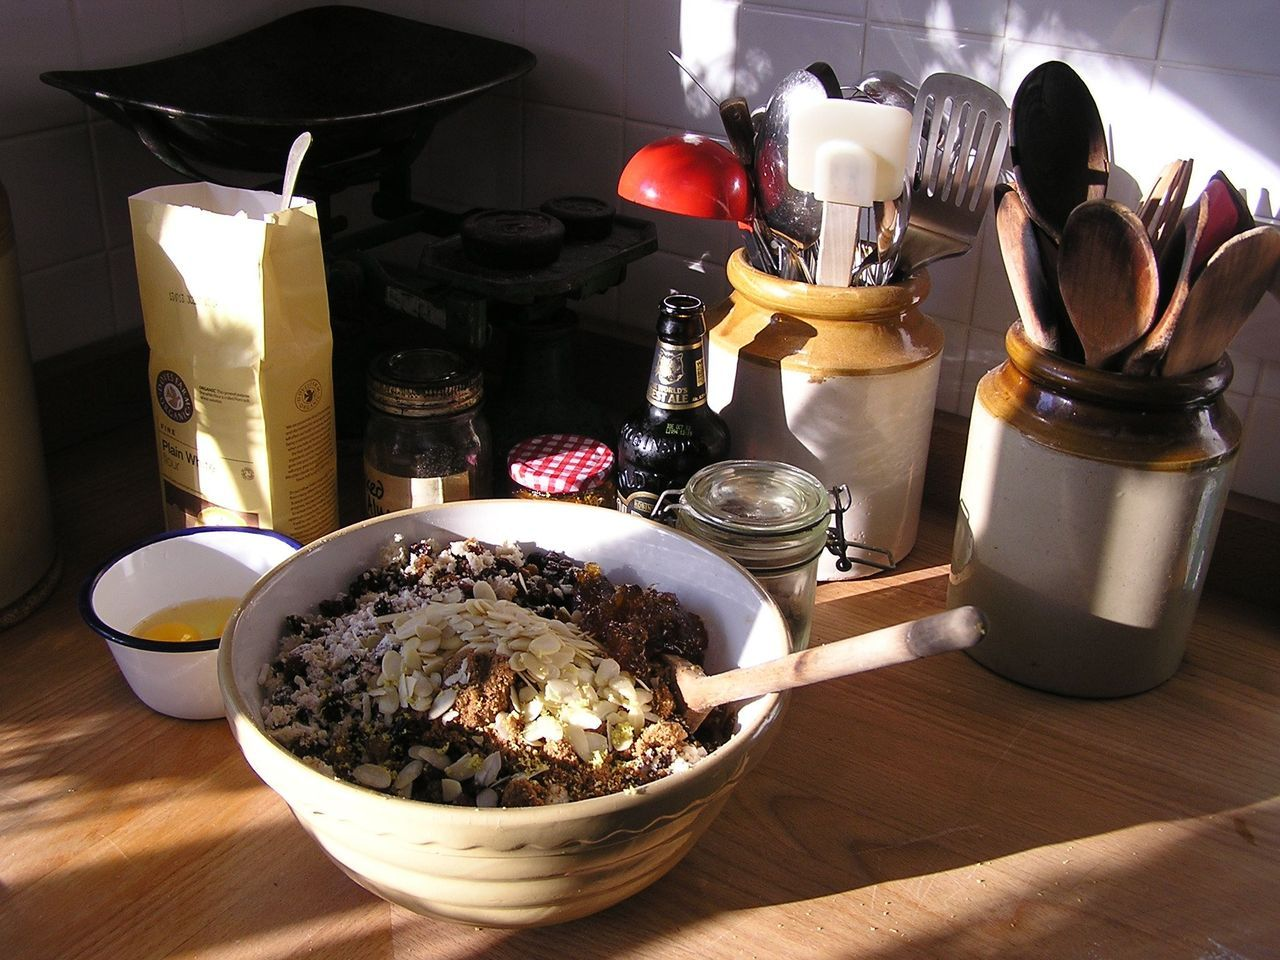 Today is Stir Up Sunday, the traditional day for making Christmas puddings. After a lengthy boiling, the puddings need to mature for several weeks so now's about the right time. I'm also making a cake for Christmas later too; I don't always stick to the traditional day, in fact I often make them a few weeks earlier as both improve with keeping. I'm making two puddings today, one for Christmas and one for later in the winter as something to come back to after a days digging on the allotment or a long walk. The recipe I'm using is one from Hugh Fearlessly-Eatingall, as he's known in the Greedy Gardener household, and as well as the bottle of stout and breadcrumbs favoured by my grandmother, it also uses marmalade which I've found to be a most delicious addition. I've replaced some of the vine fruits with a few chopped prunes as well for extra moistness. If you don't have an enormous tribe to feed at Christmas, I've made this recipe with half the amounts in smaller basins and it works perfectly well. The name Stir Up Sunday has its origins in church tradition. Today is the last Sunday before Advent, and the collect for the day begins with the words: Stir up, we beseech thee, O Lord, the wills of thy faithful people; that they, plenteously bringing forth the fruit of good works, may of thee be plenteously rewarded.  I am indeed bringing forth plenteous fruit for the recipe, and whether or not this is the kind of fruit that the Book of Common Prayer had in mind, I expect to be plenteously rewarded on Christmas day.